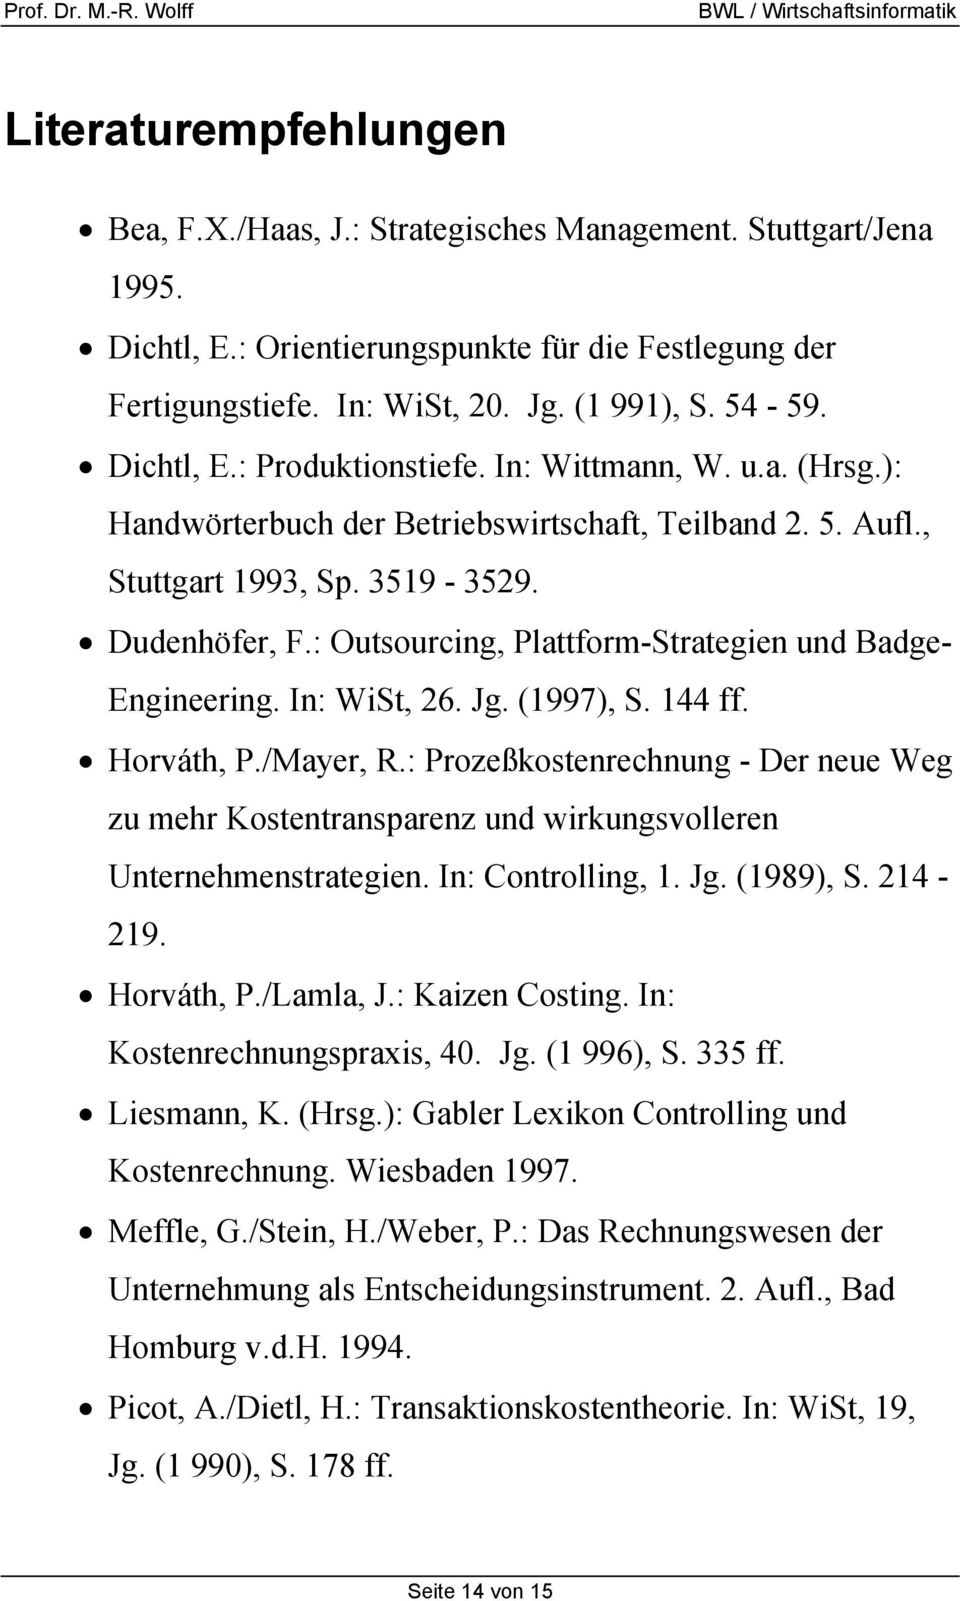 : Outsourcing, Plattform-Strategien und Badge- Engineering. In: WiSt, 26. Jg. (1997), S. 144 ff. Horváth, P./Mayer, R.